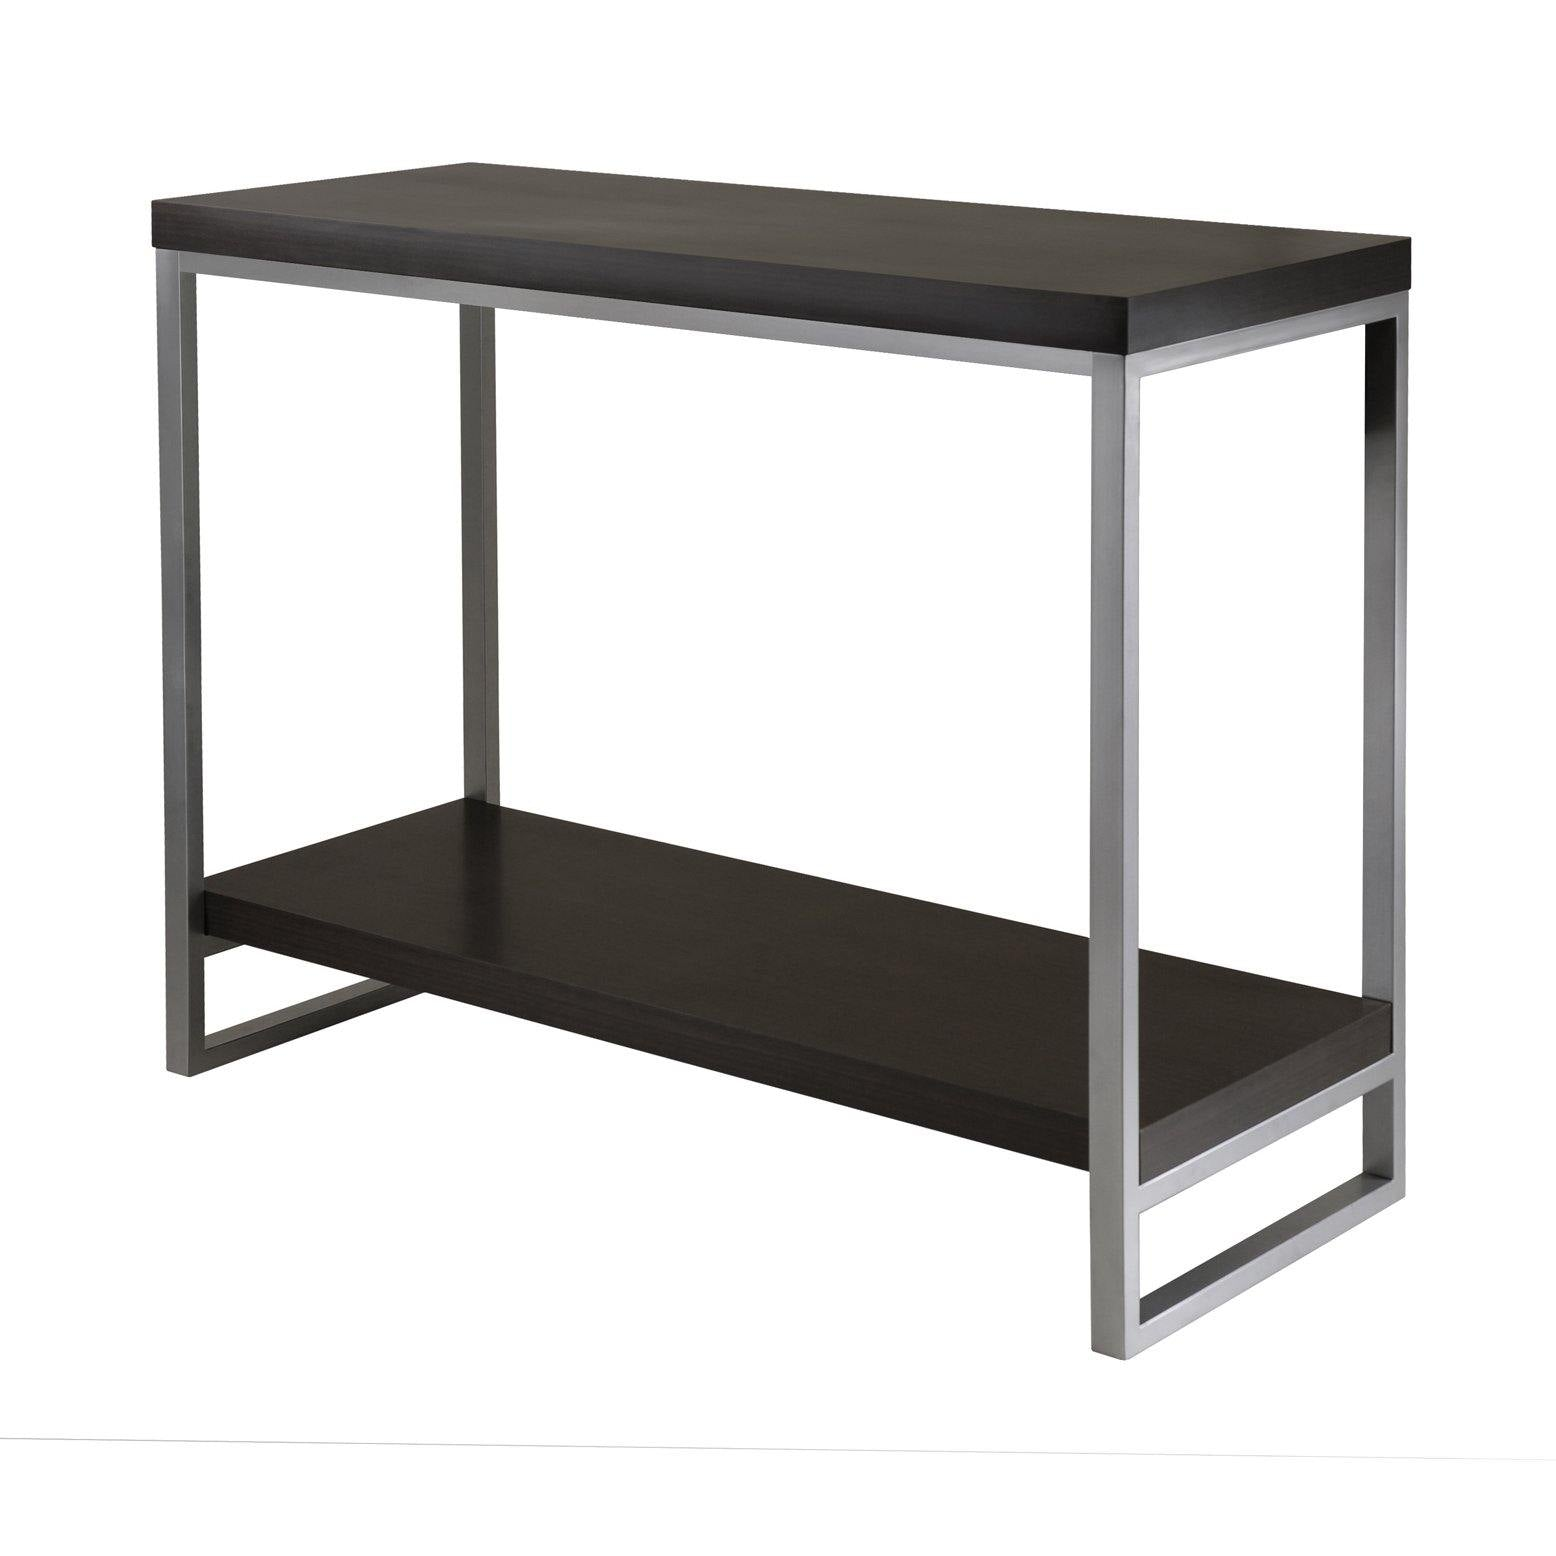 Jared Console Table, Enamel Steel Tube - My USA Furniture